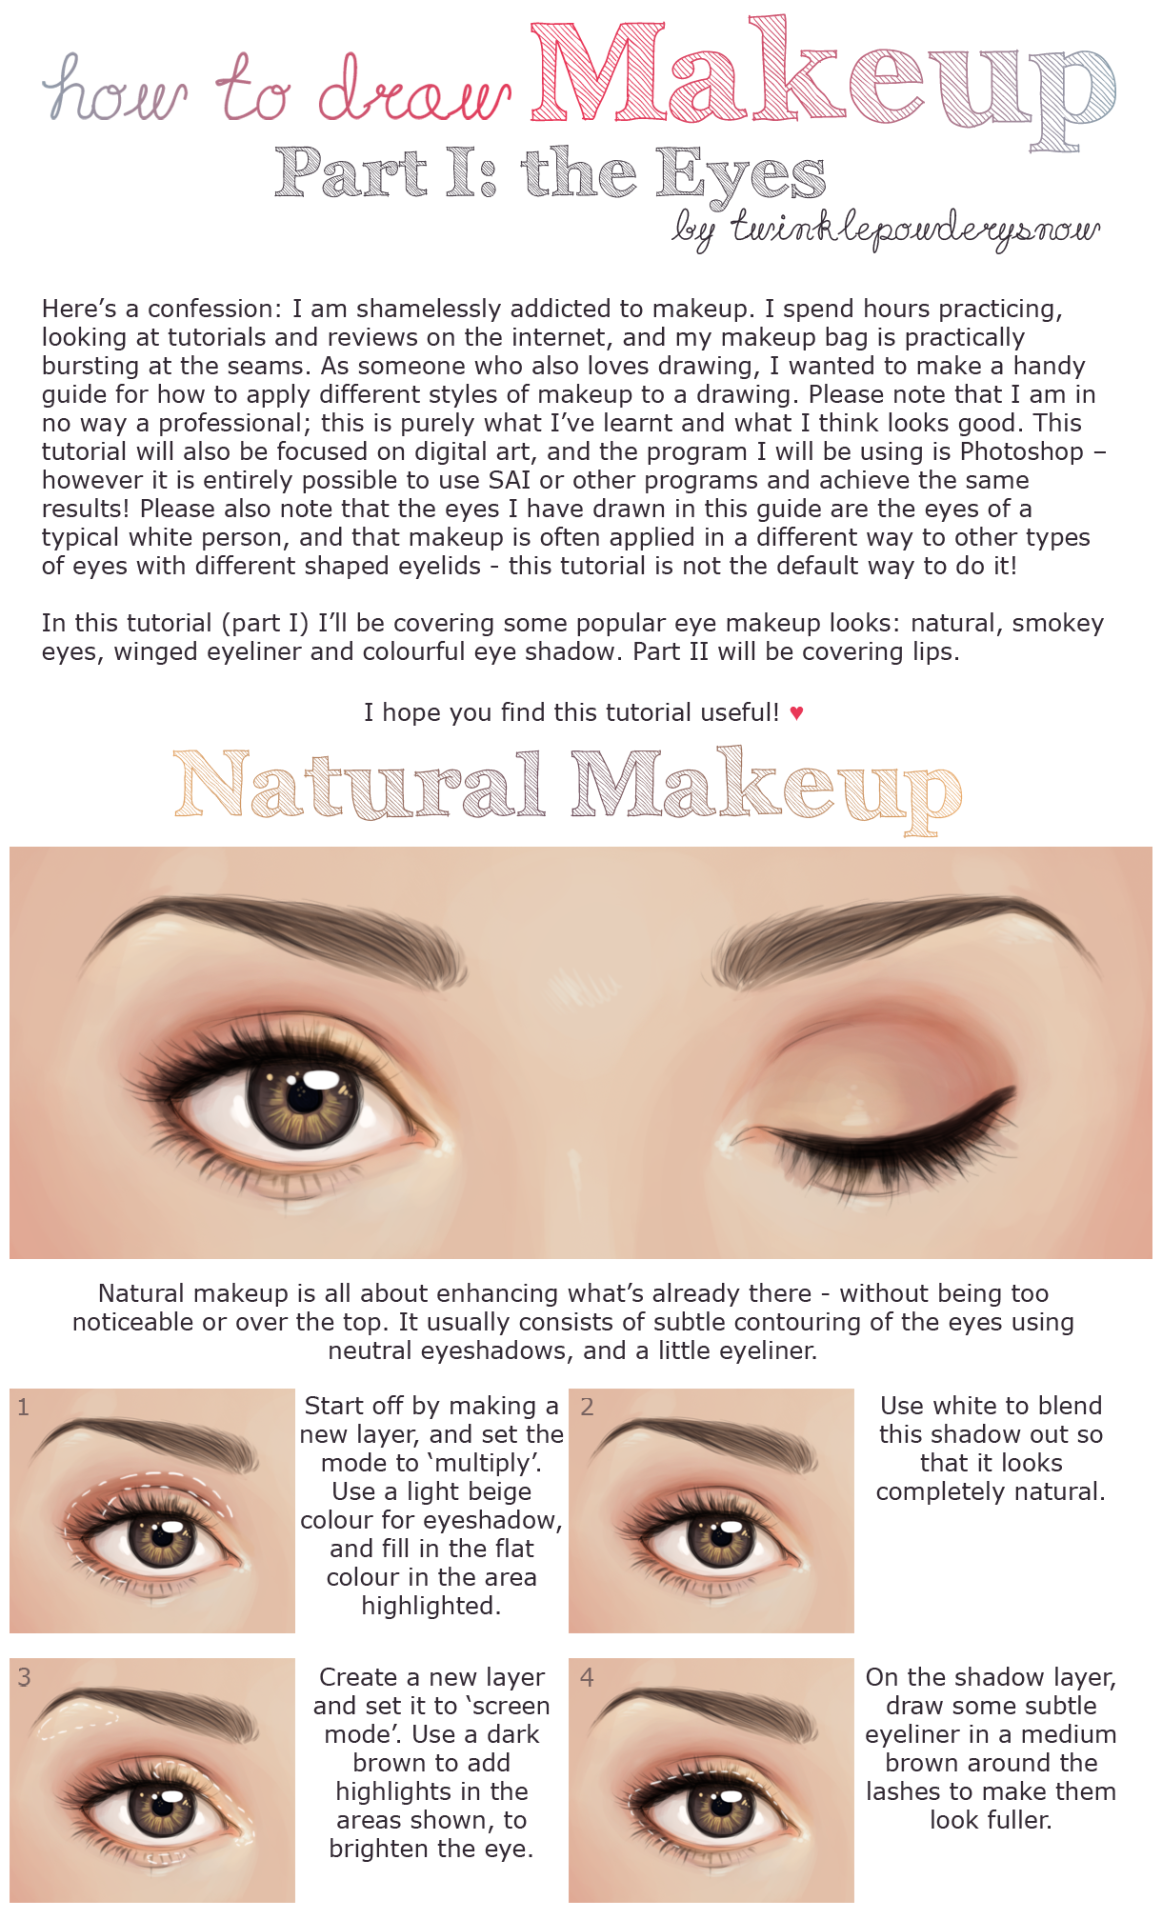 twinklepowderysnow:click here for full resolution!!alrighty here's my guide to drawing eye makeup! hope y'all find it useful and stay tuned for a guide to drawing lipstick ovo